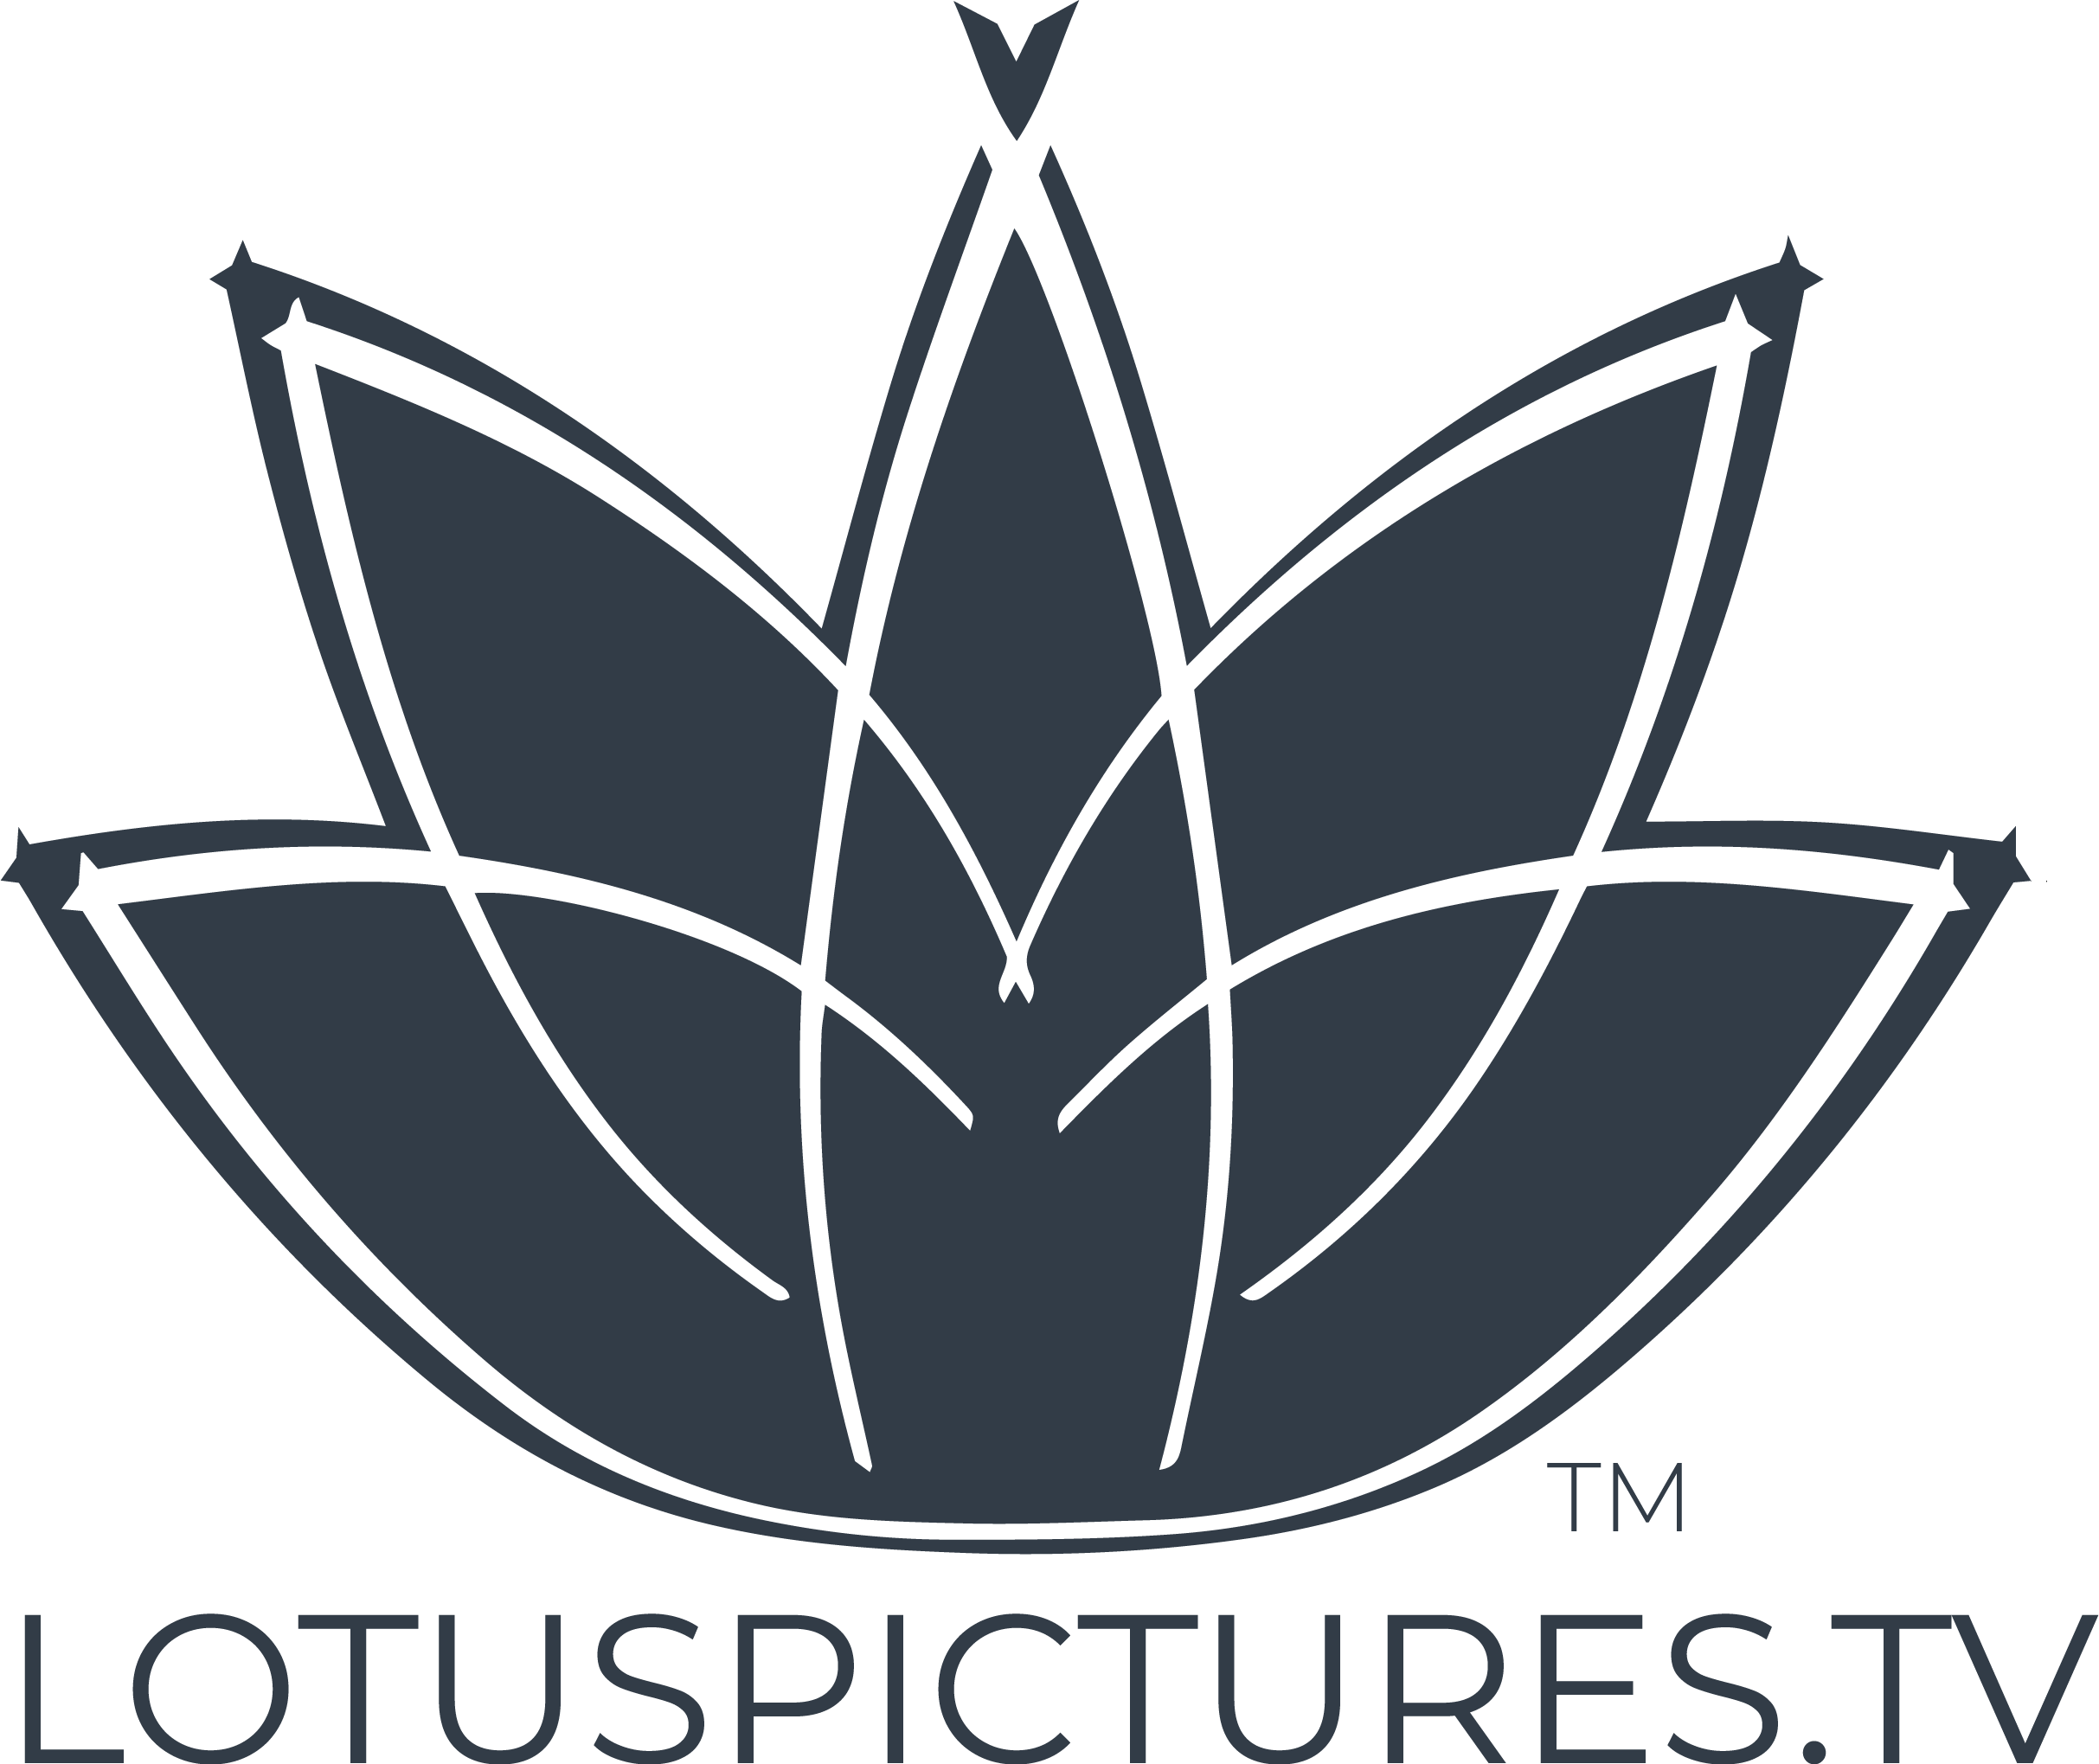 lotus.TV_VectorTM 2-01.png